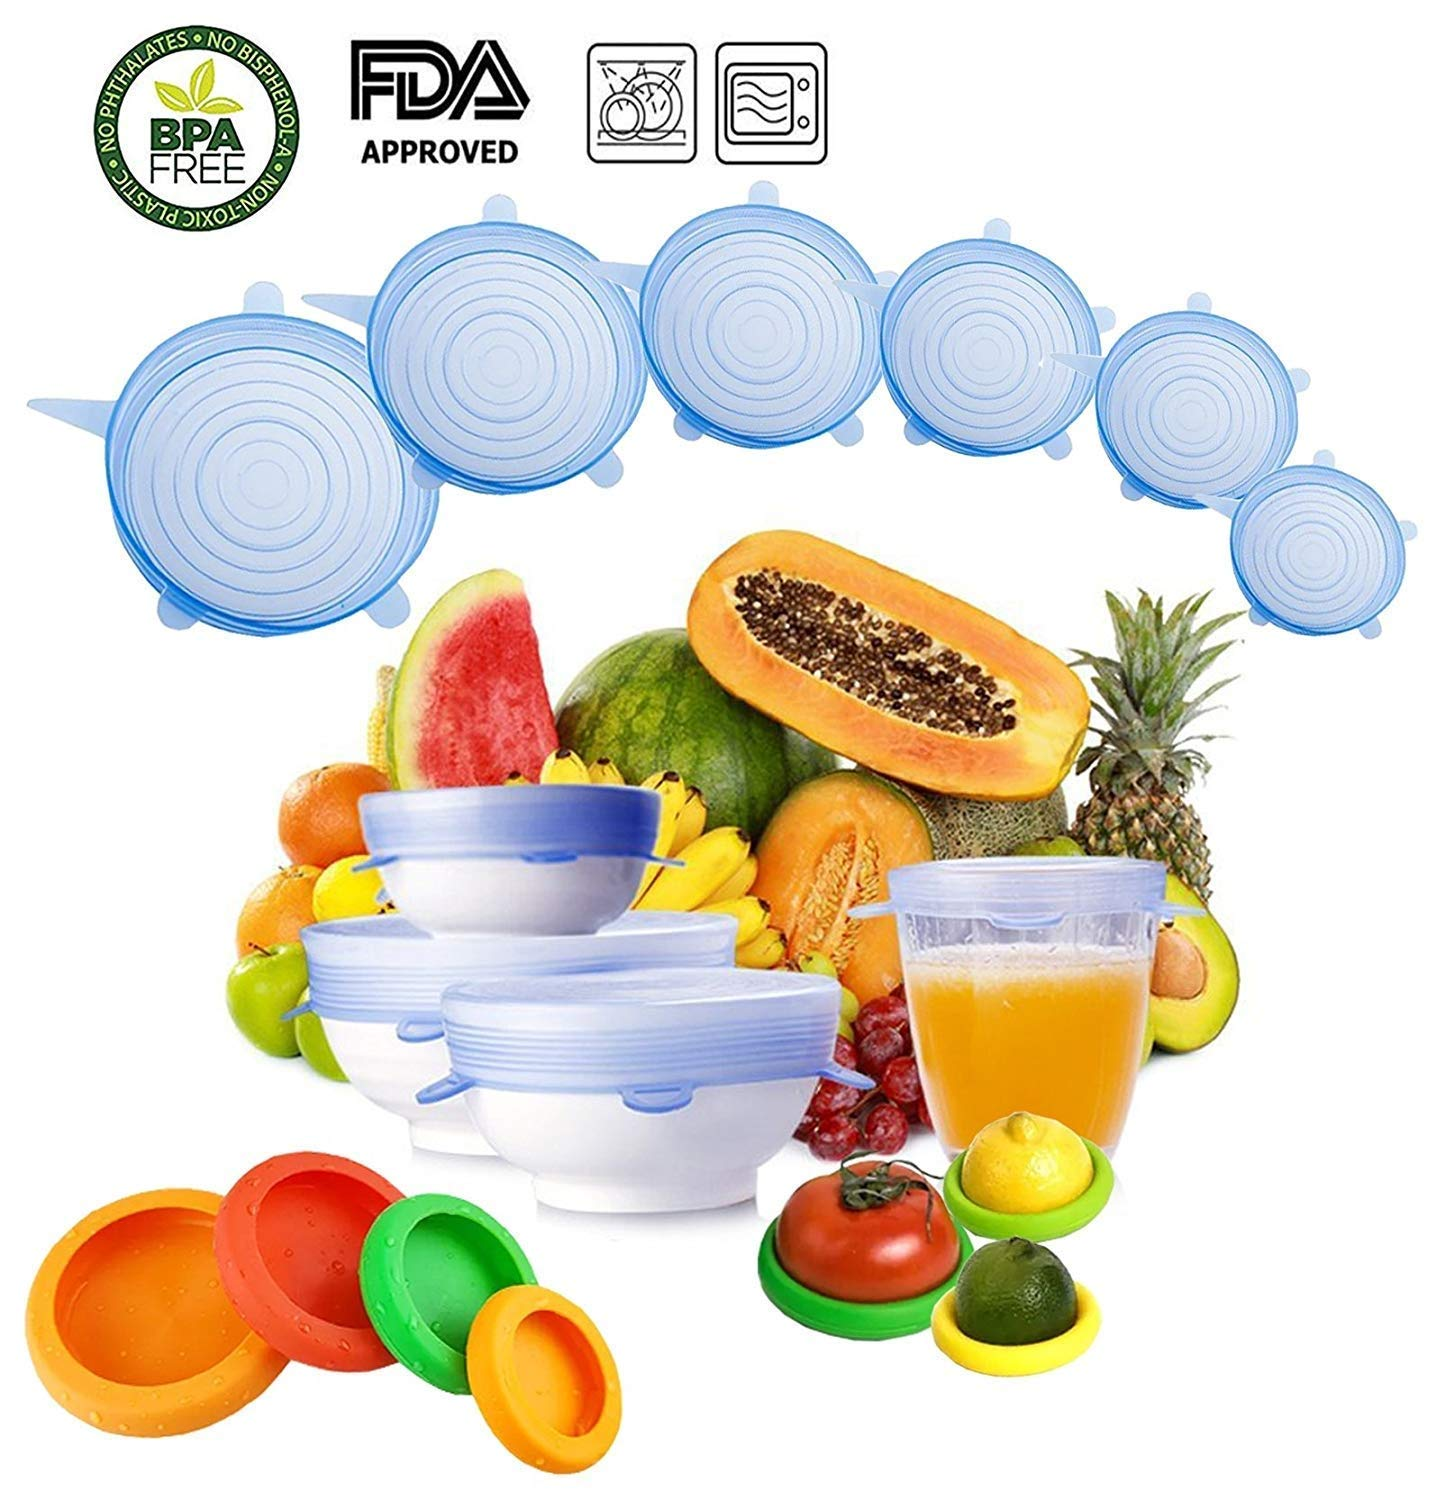 Aneboom Silicone Stretch Lids,Insta lids,Food Saver,6-Pack of Various Sizes to Fit Various Size and Shape of Containers,Reusable, Keeping Food Fresh, Dishwasher and Freeze,4-Pack Food Saver Reusable